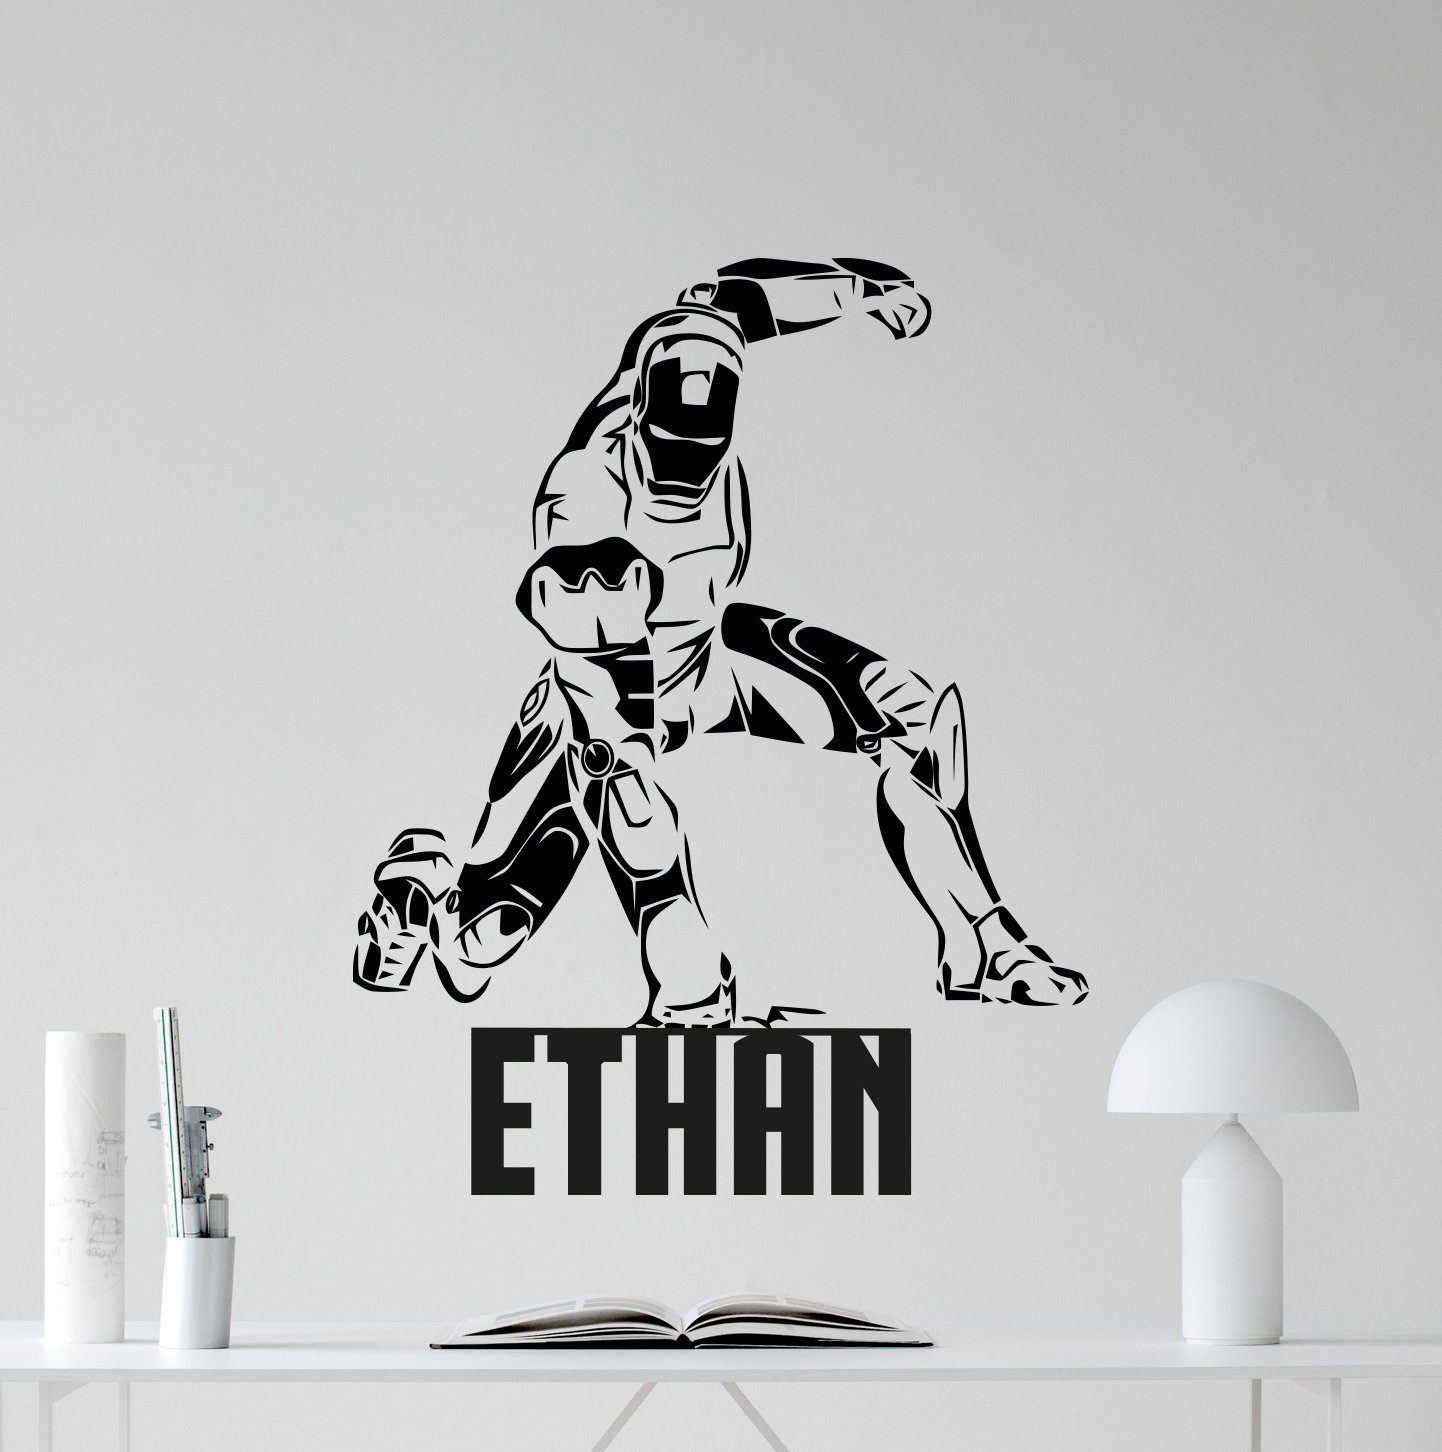 Personalized iron man wall decal custom name superhero avengers stencil poster marvel comics tony stark superheroes vinyl sticker cool movie wall art kids